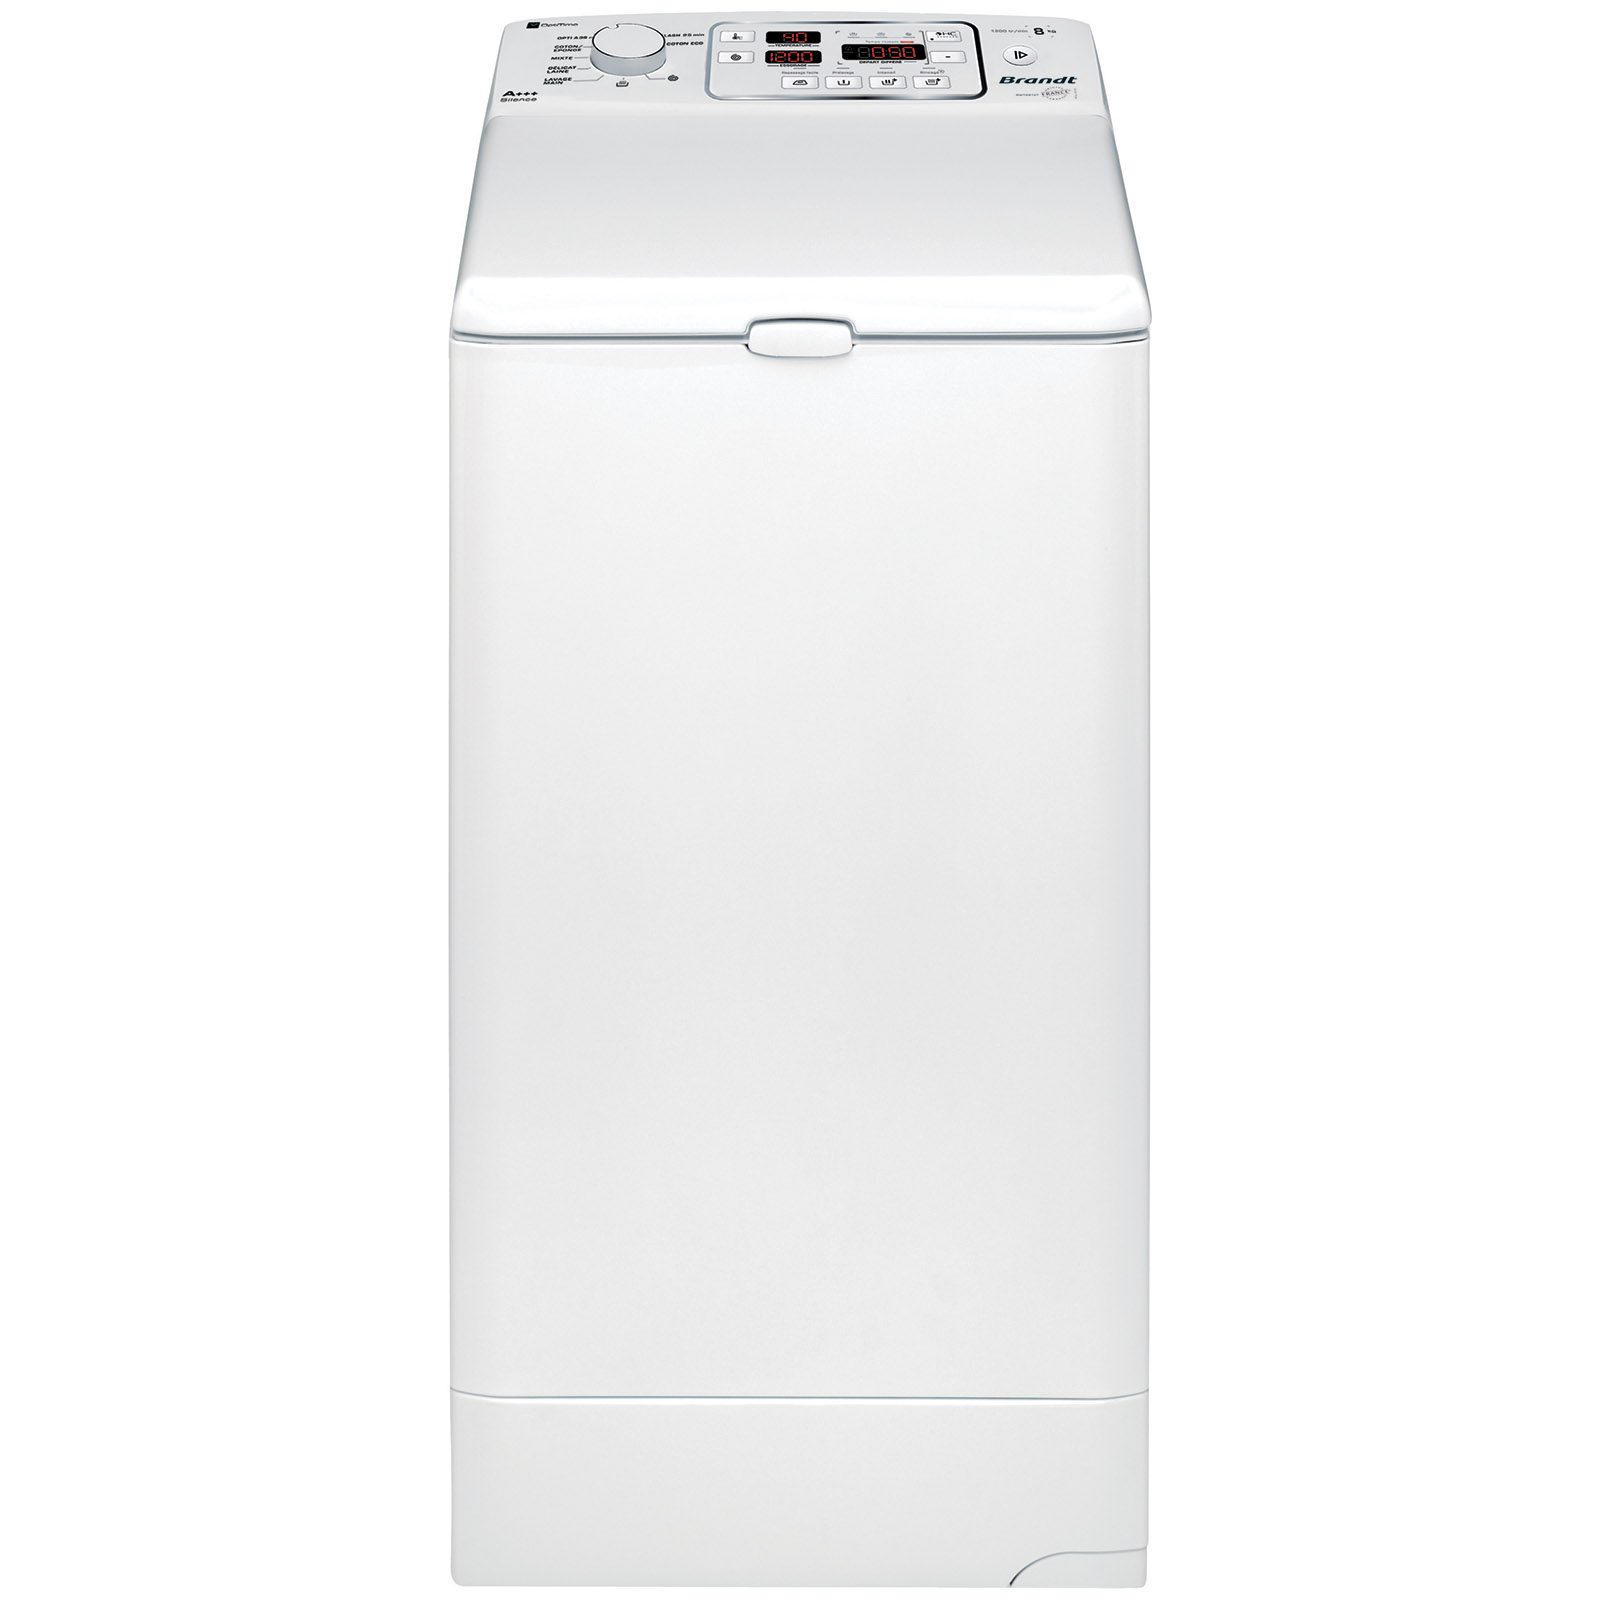 Best Top Loading Washing Machine >> Laundry care | Brandt Electroménager